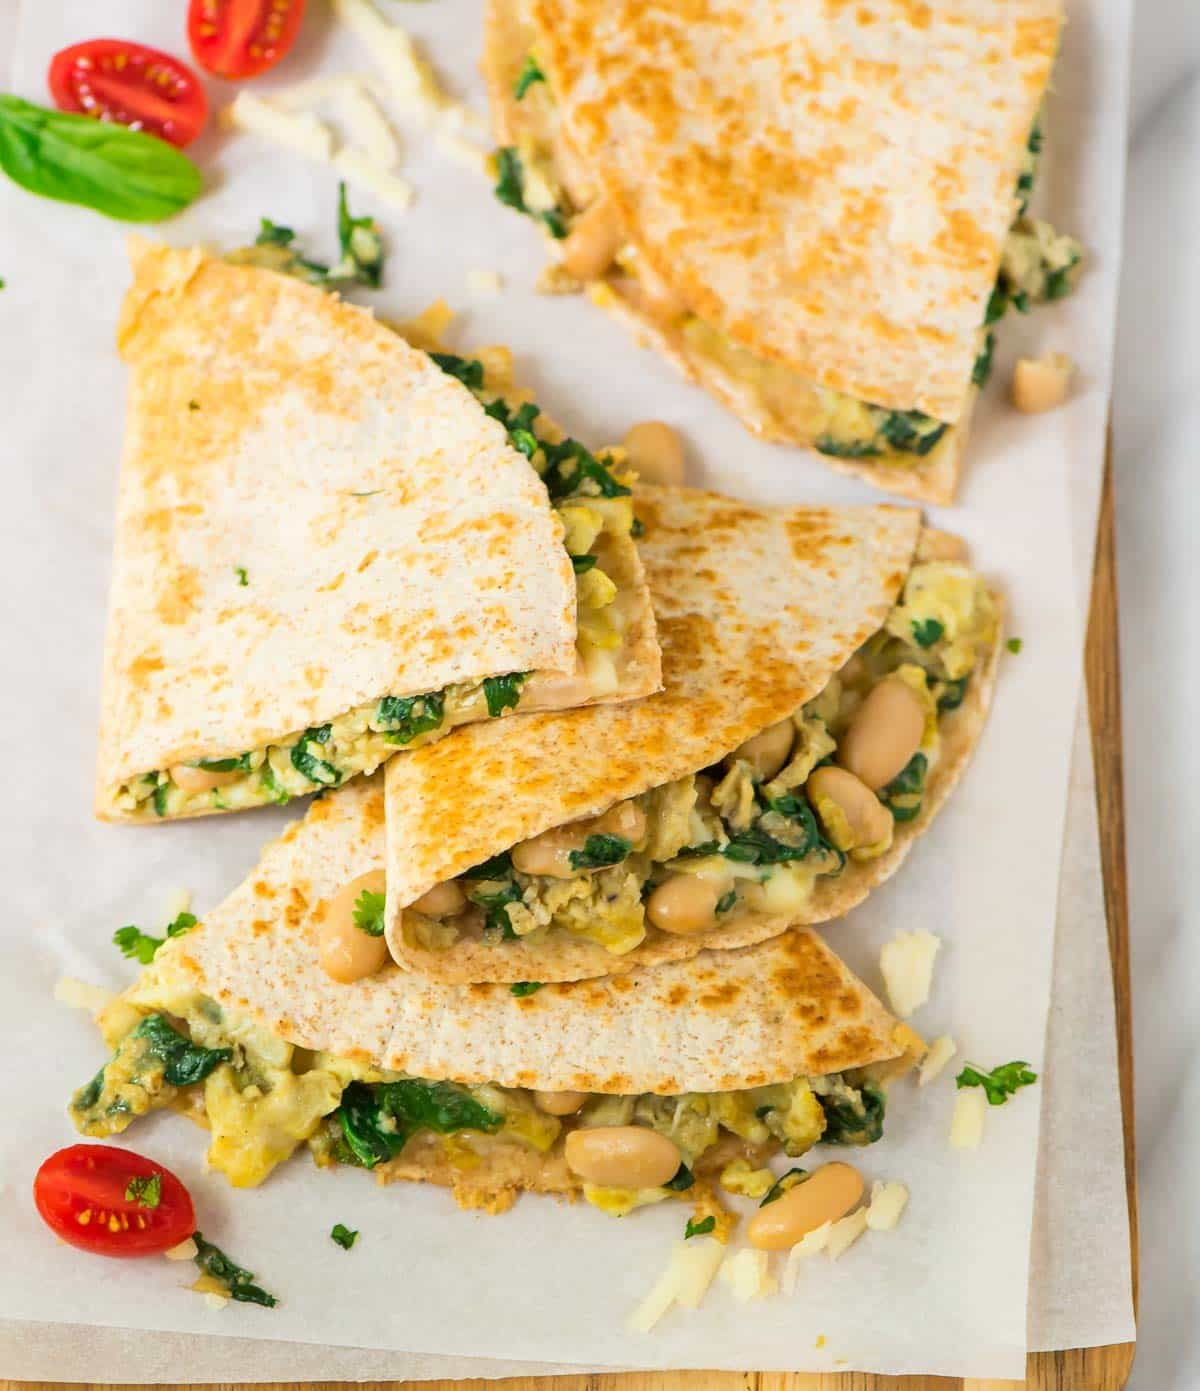 A vegetarian breakfast quesadillas cut into wedges on parchment paper and garnished with parsley and tomatoes